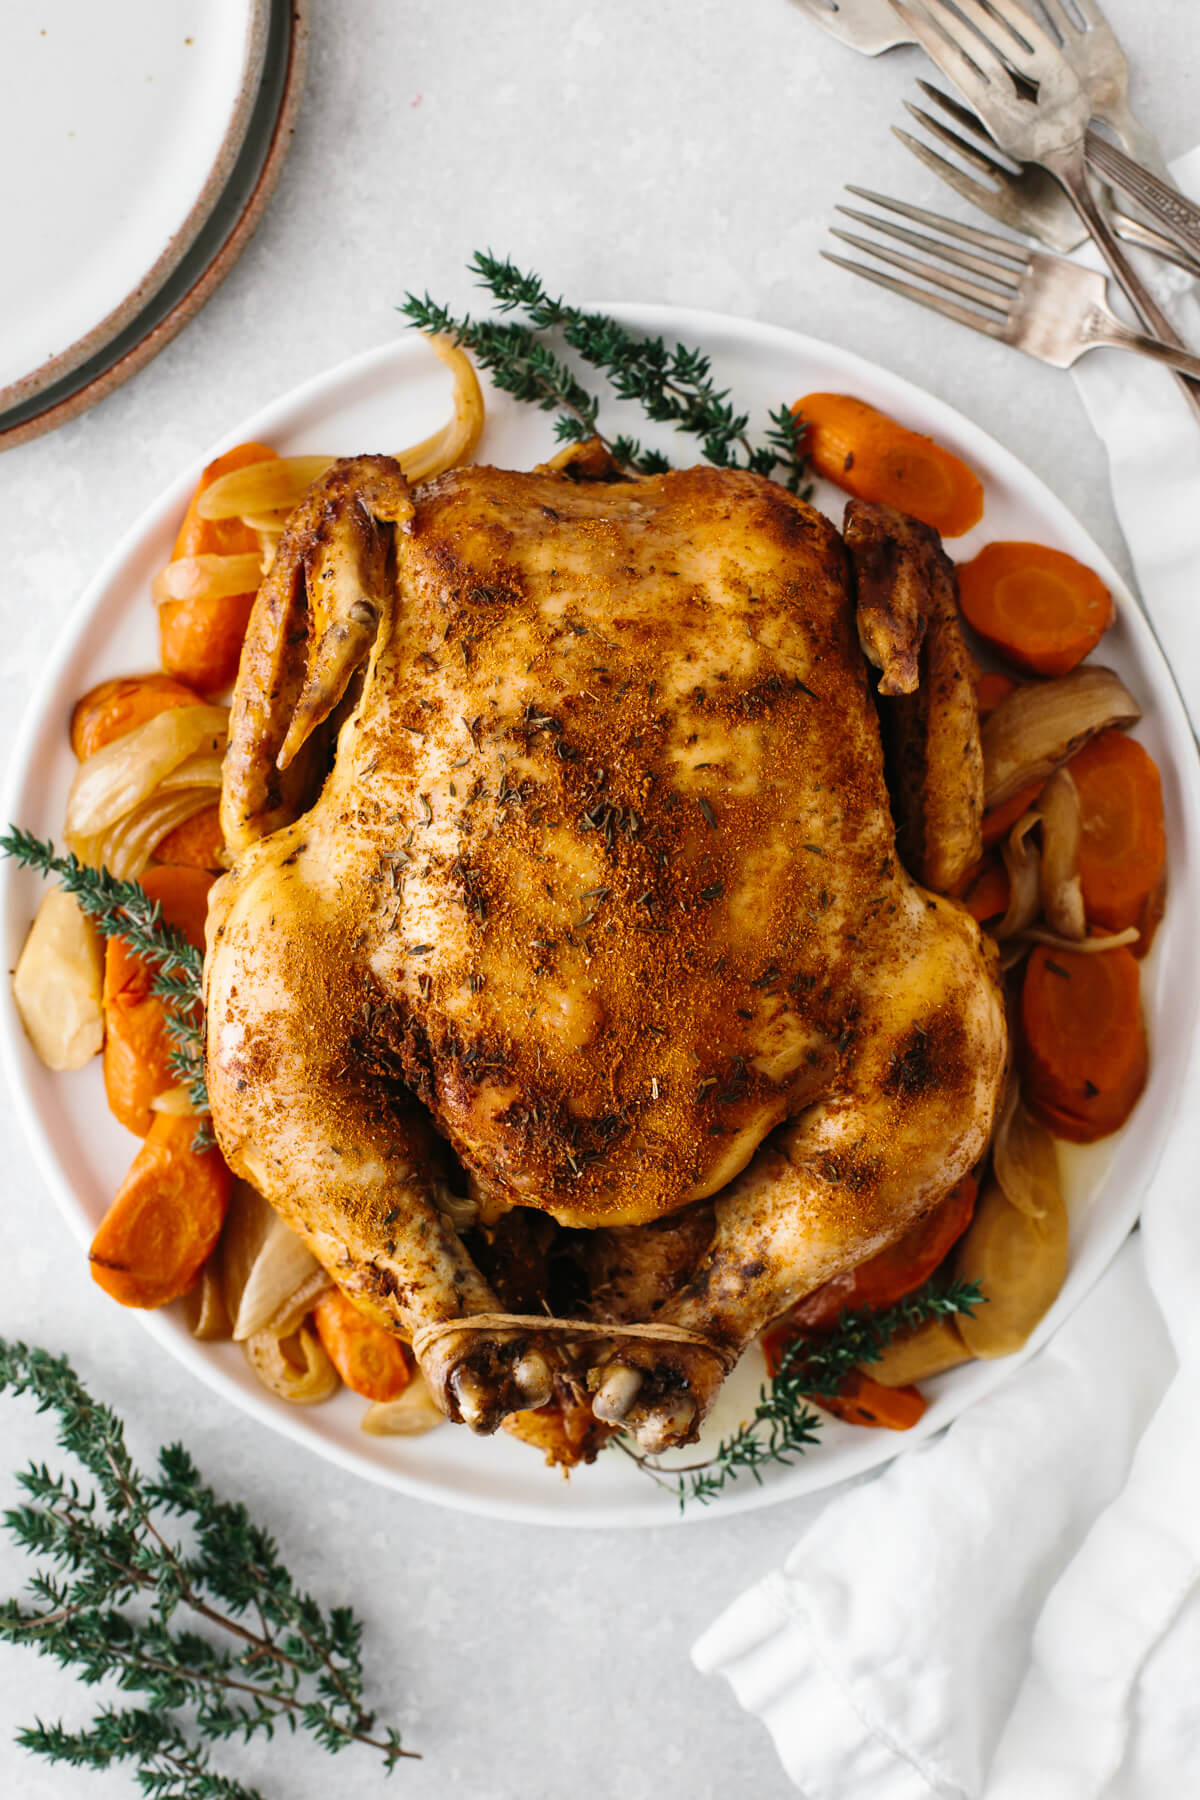 Slow cooker rotisserie chicken on a bed of vegetables on a plate.